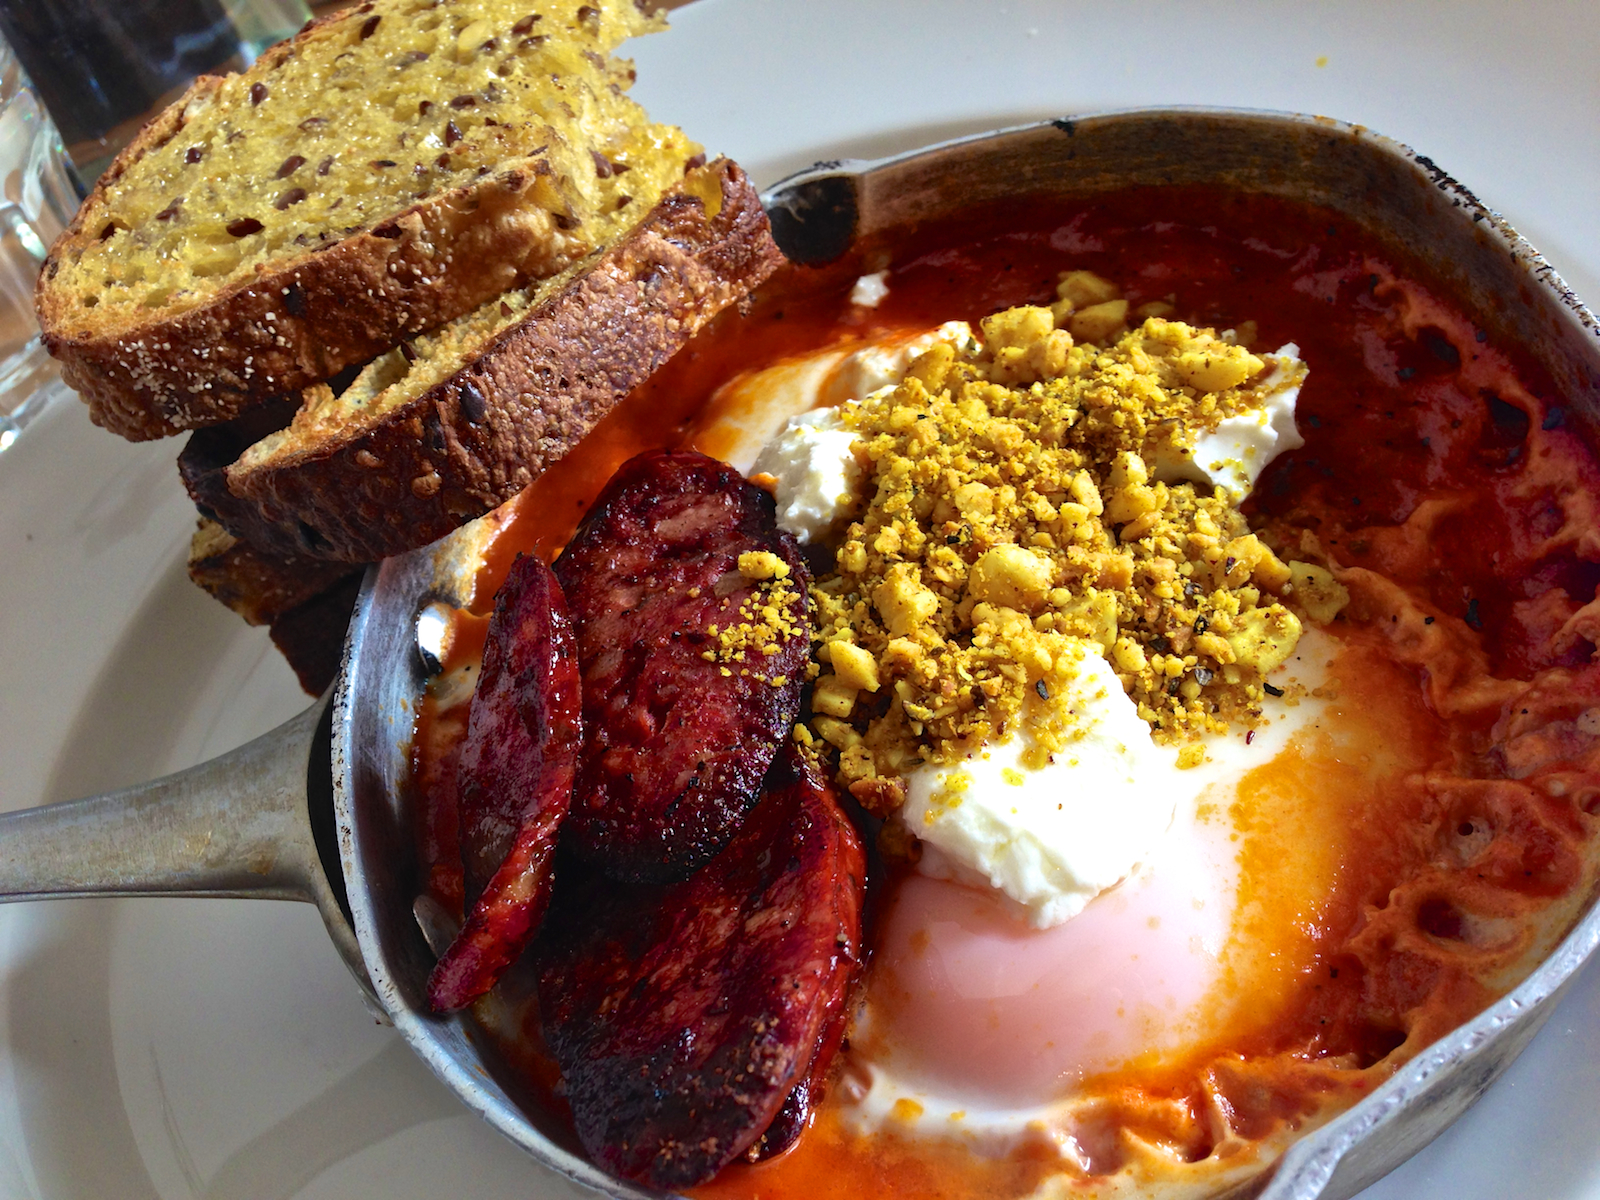 Spicy baked eggs at Axil Coffee Roasters - Image by Katherine Lim,  Source